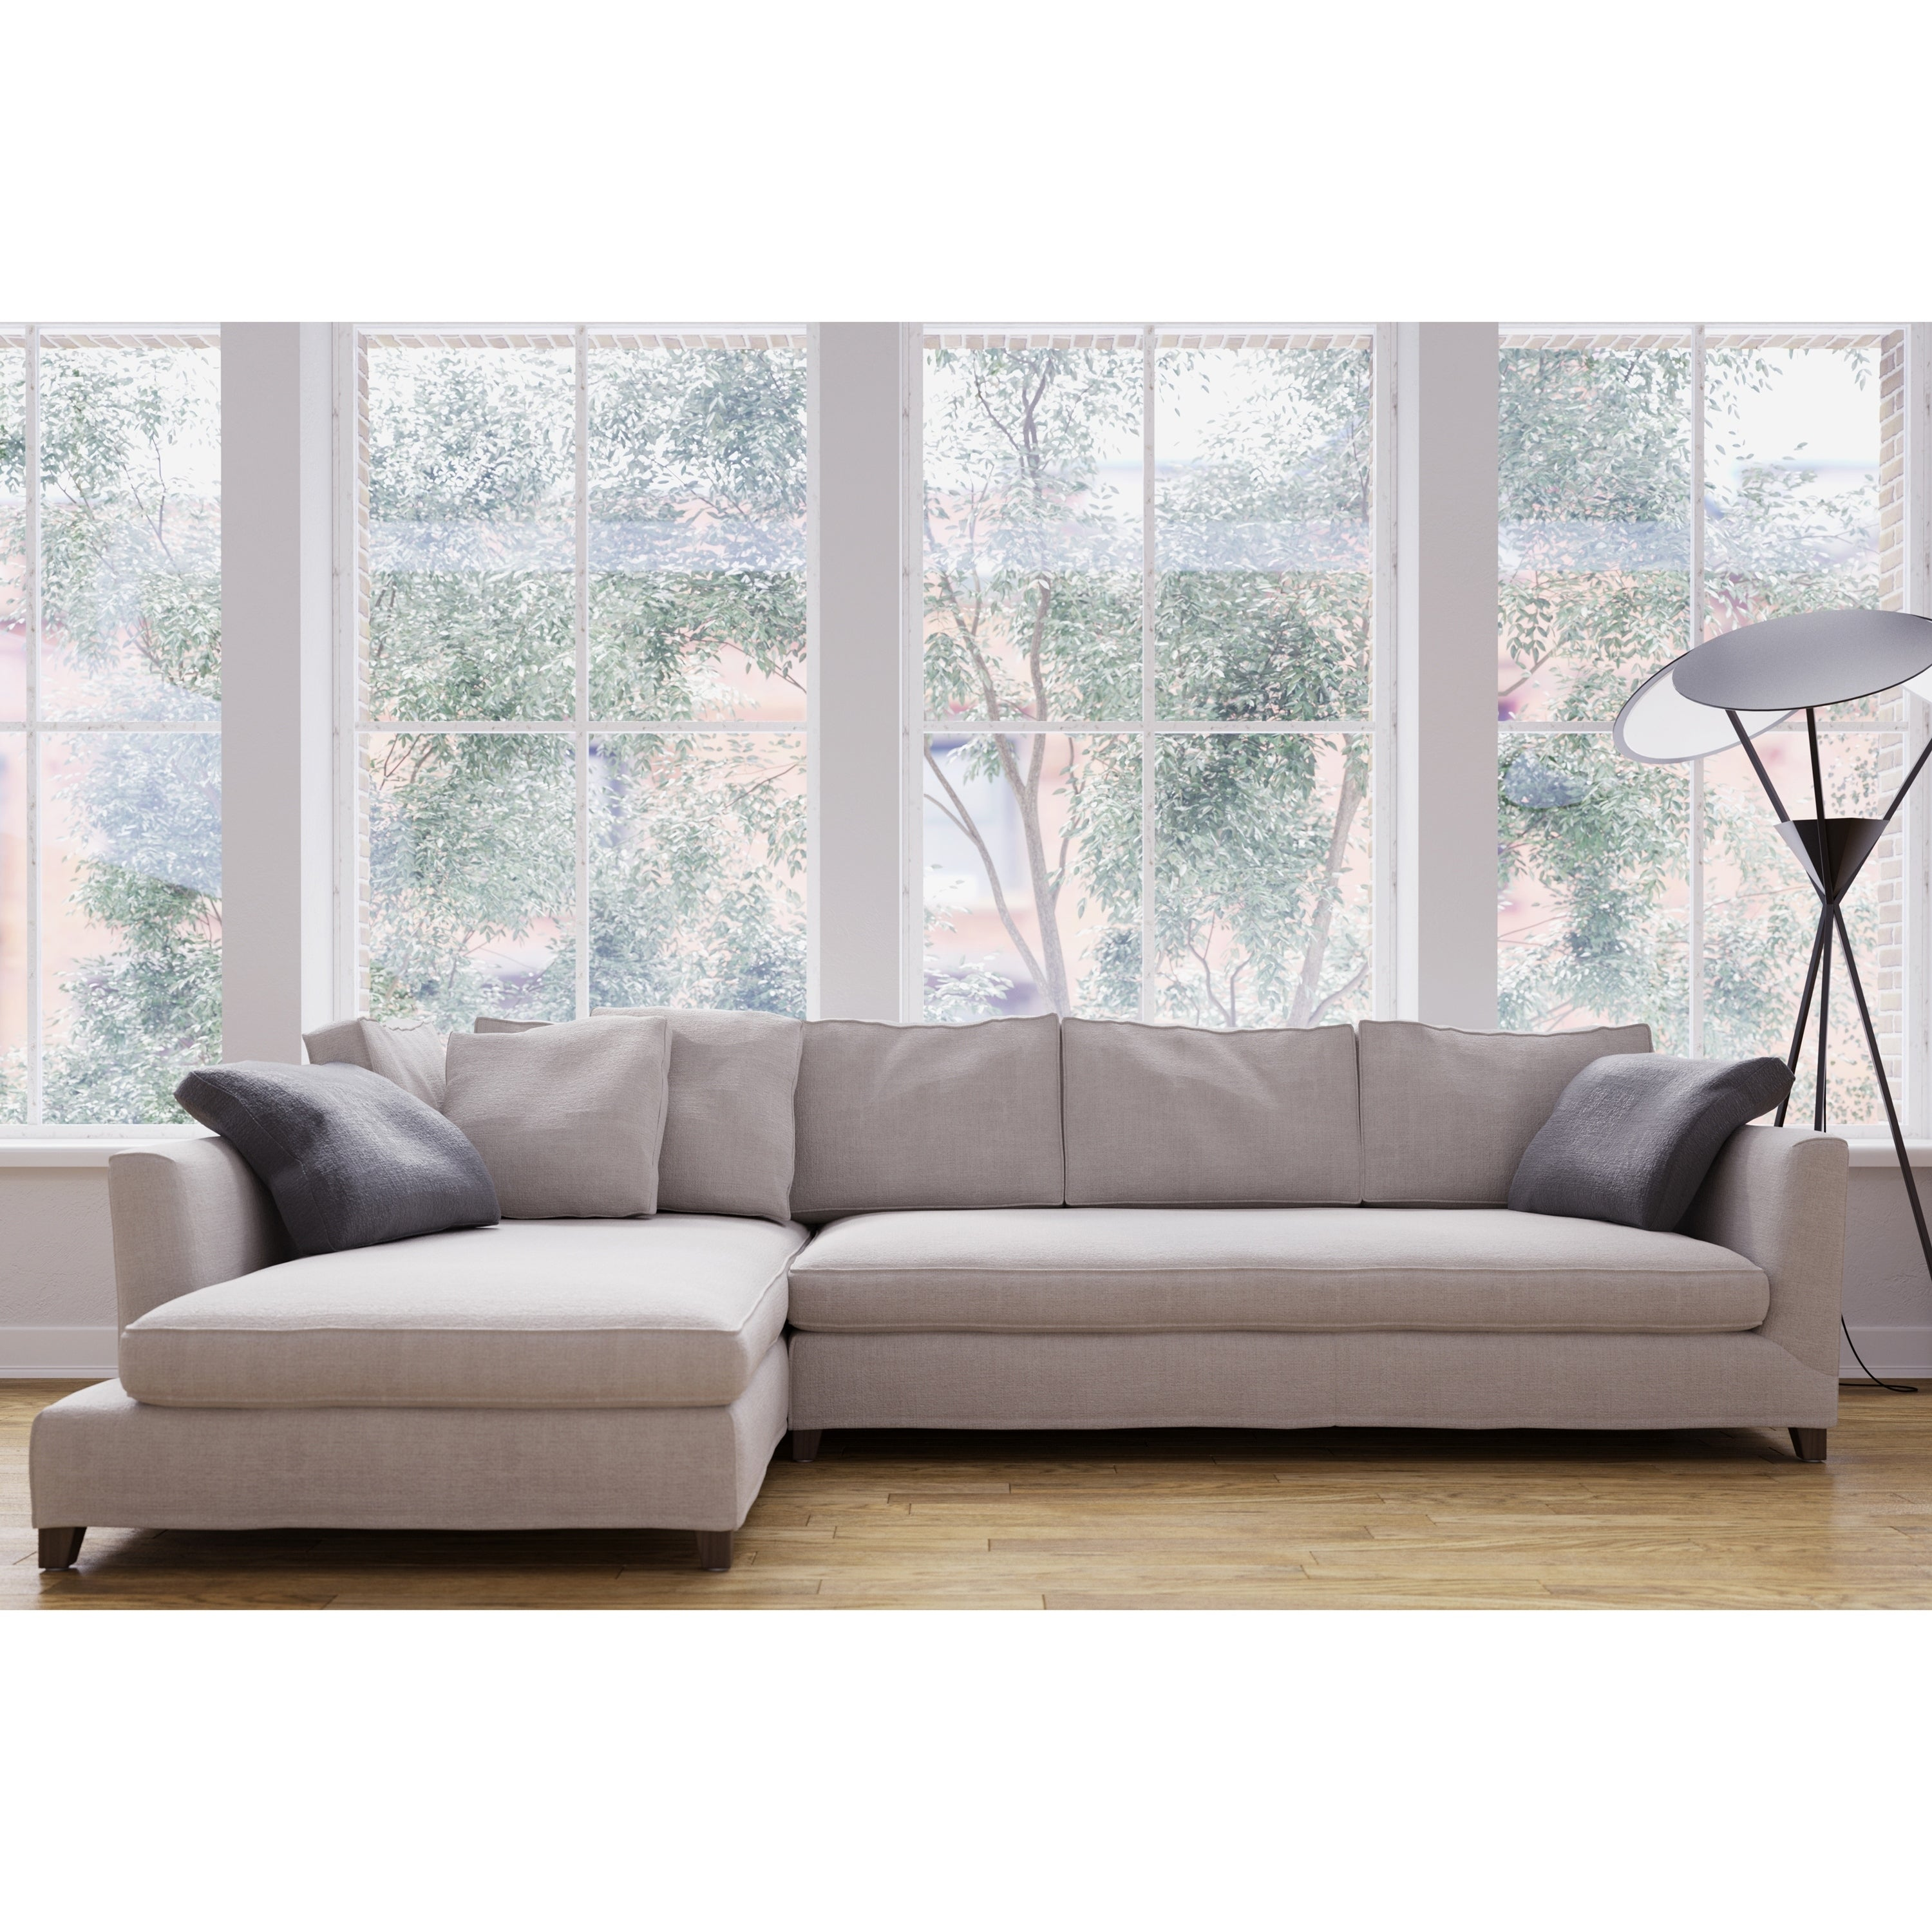 Incredible Made To Order Roche Studio Jasper Off White Fabric Sectional Sofa Ibusinesslaw Wood Chair Design Ideas Ibusinesslaworg